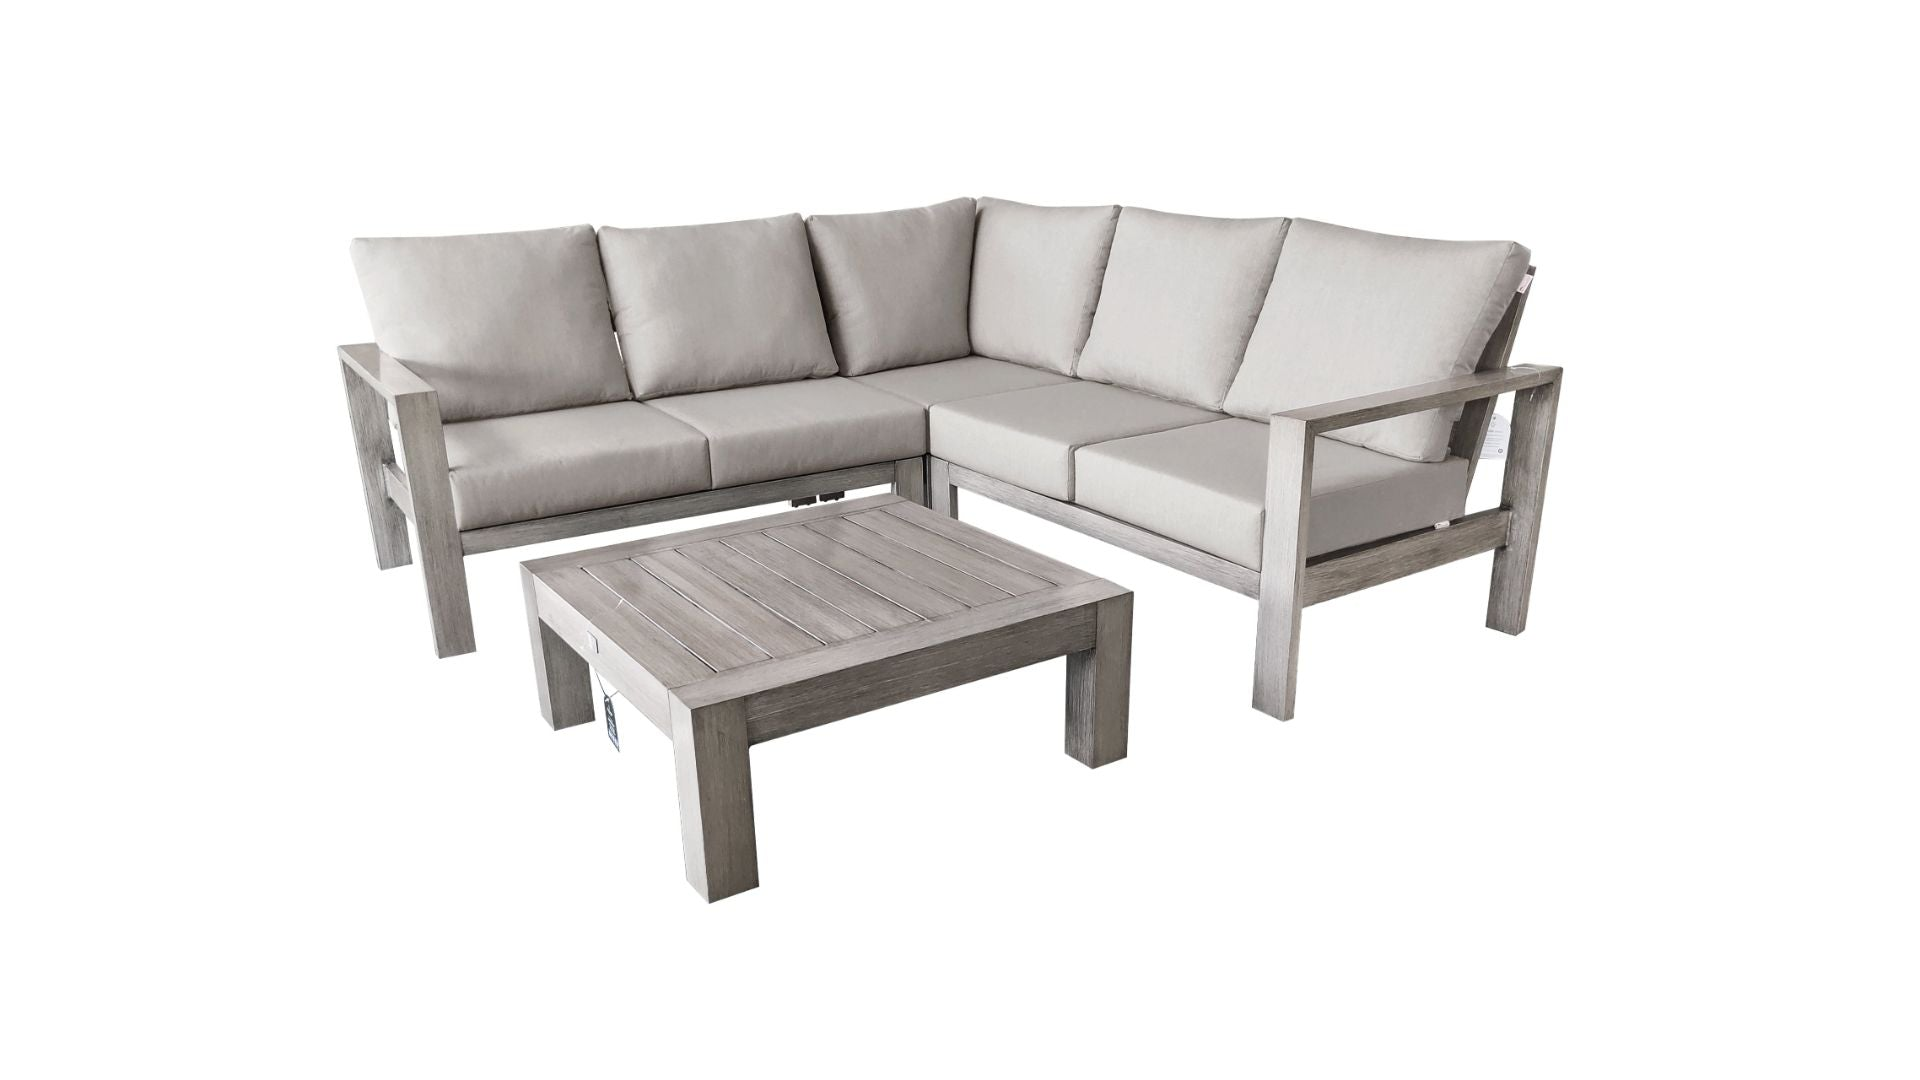 The Canyonlands - 5 Seater Sunbrella® Outdoor Sectional Sofa Set - (Eagle Series) - Cozy Corner Patios